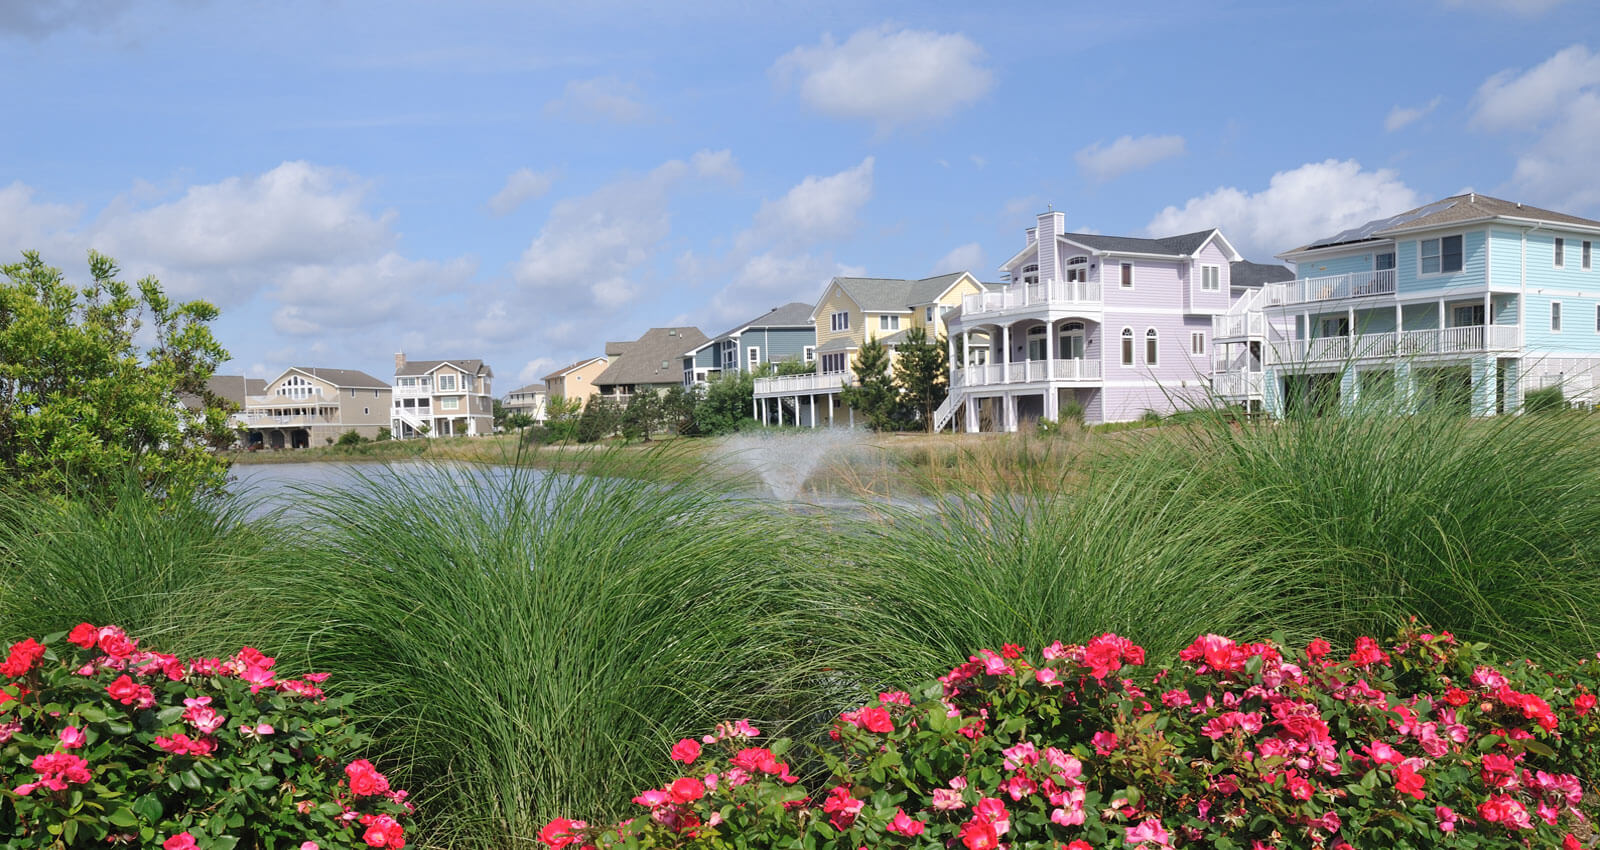 Delaware Beach Homes - Beth Dorman